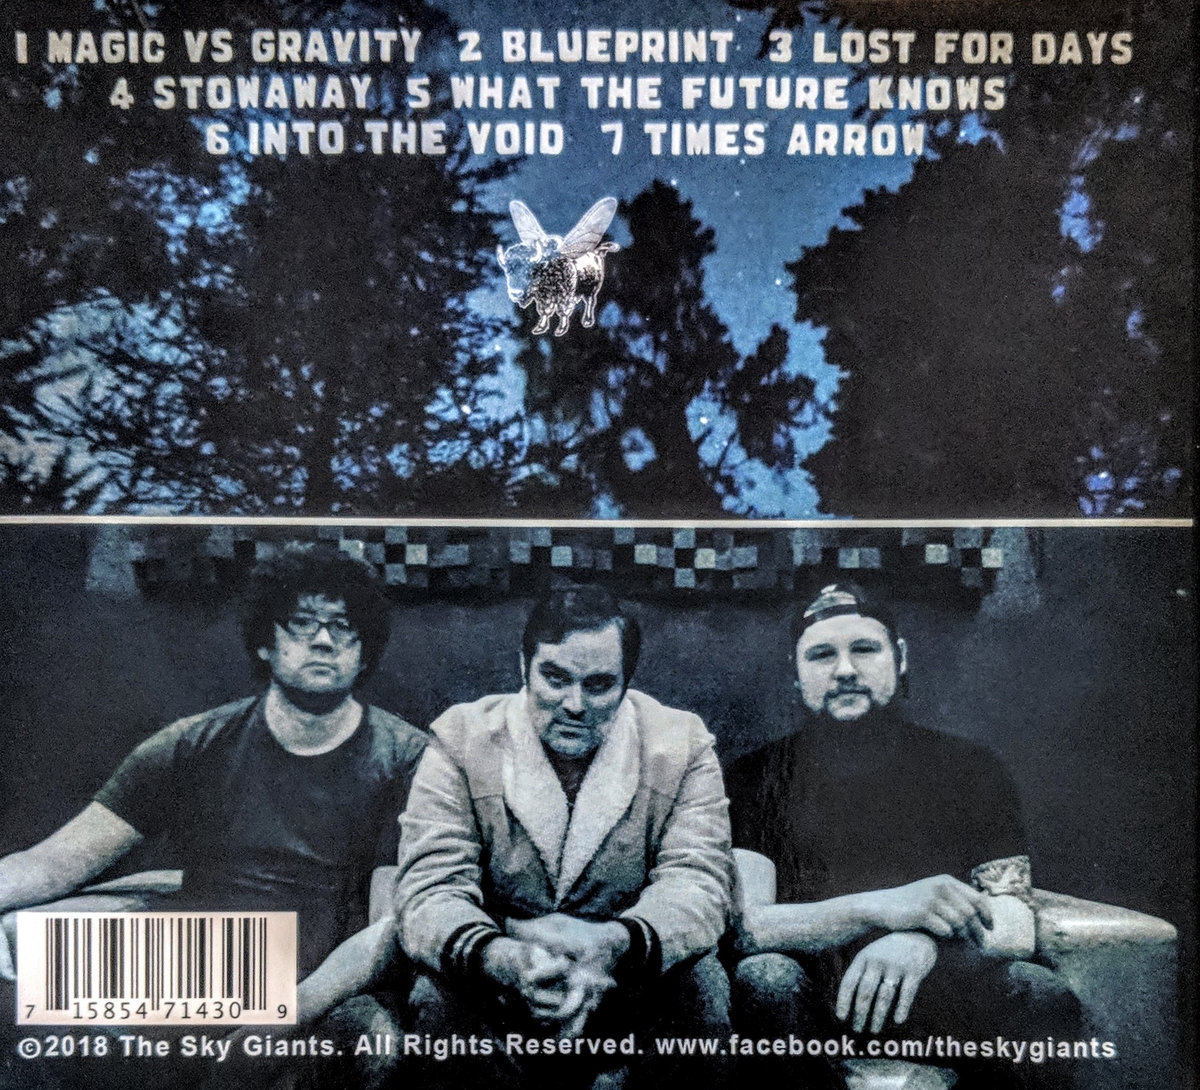 The sky giants the sky giants first studio album what the future knows comes in a 6 panel gatefold digipack with lyric book all artwork and packaging done by peter malvernweather Image collections